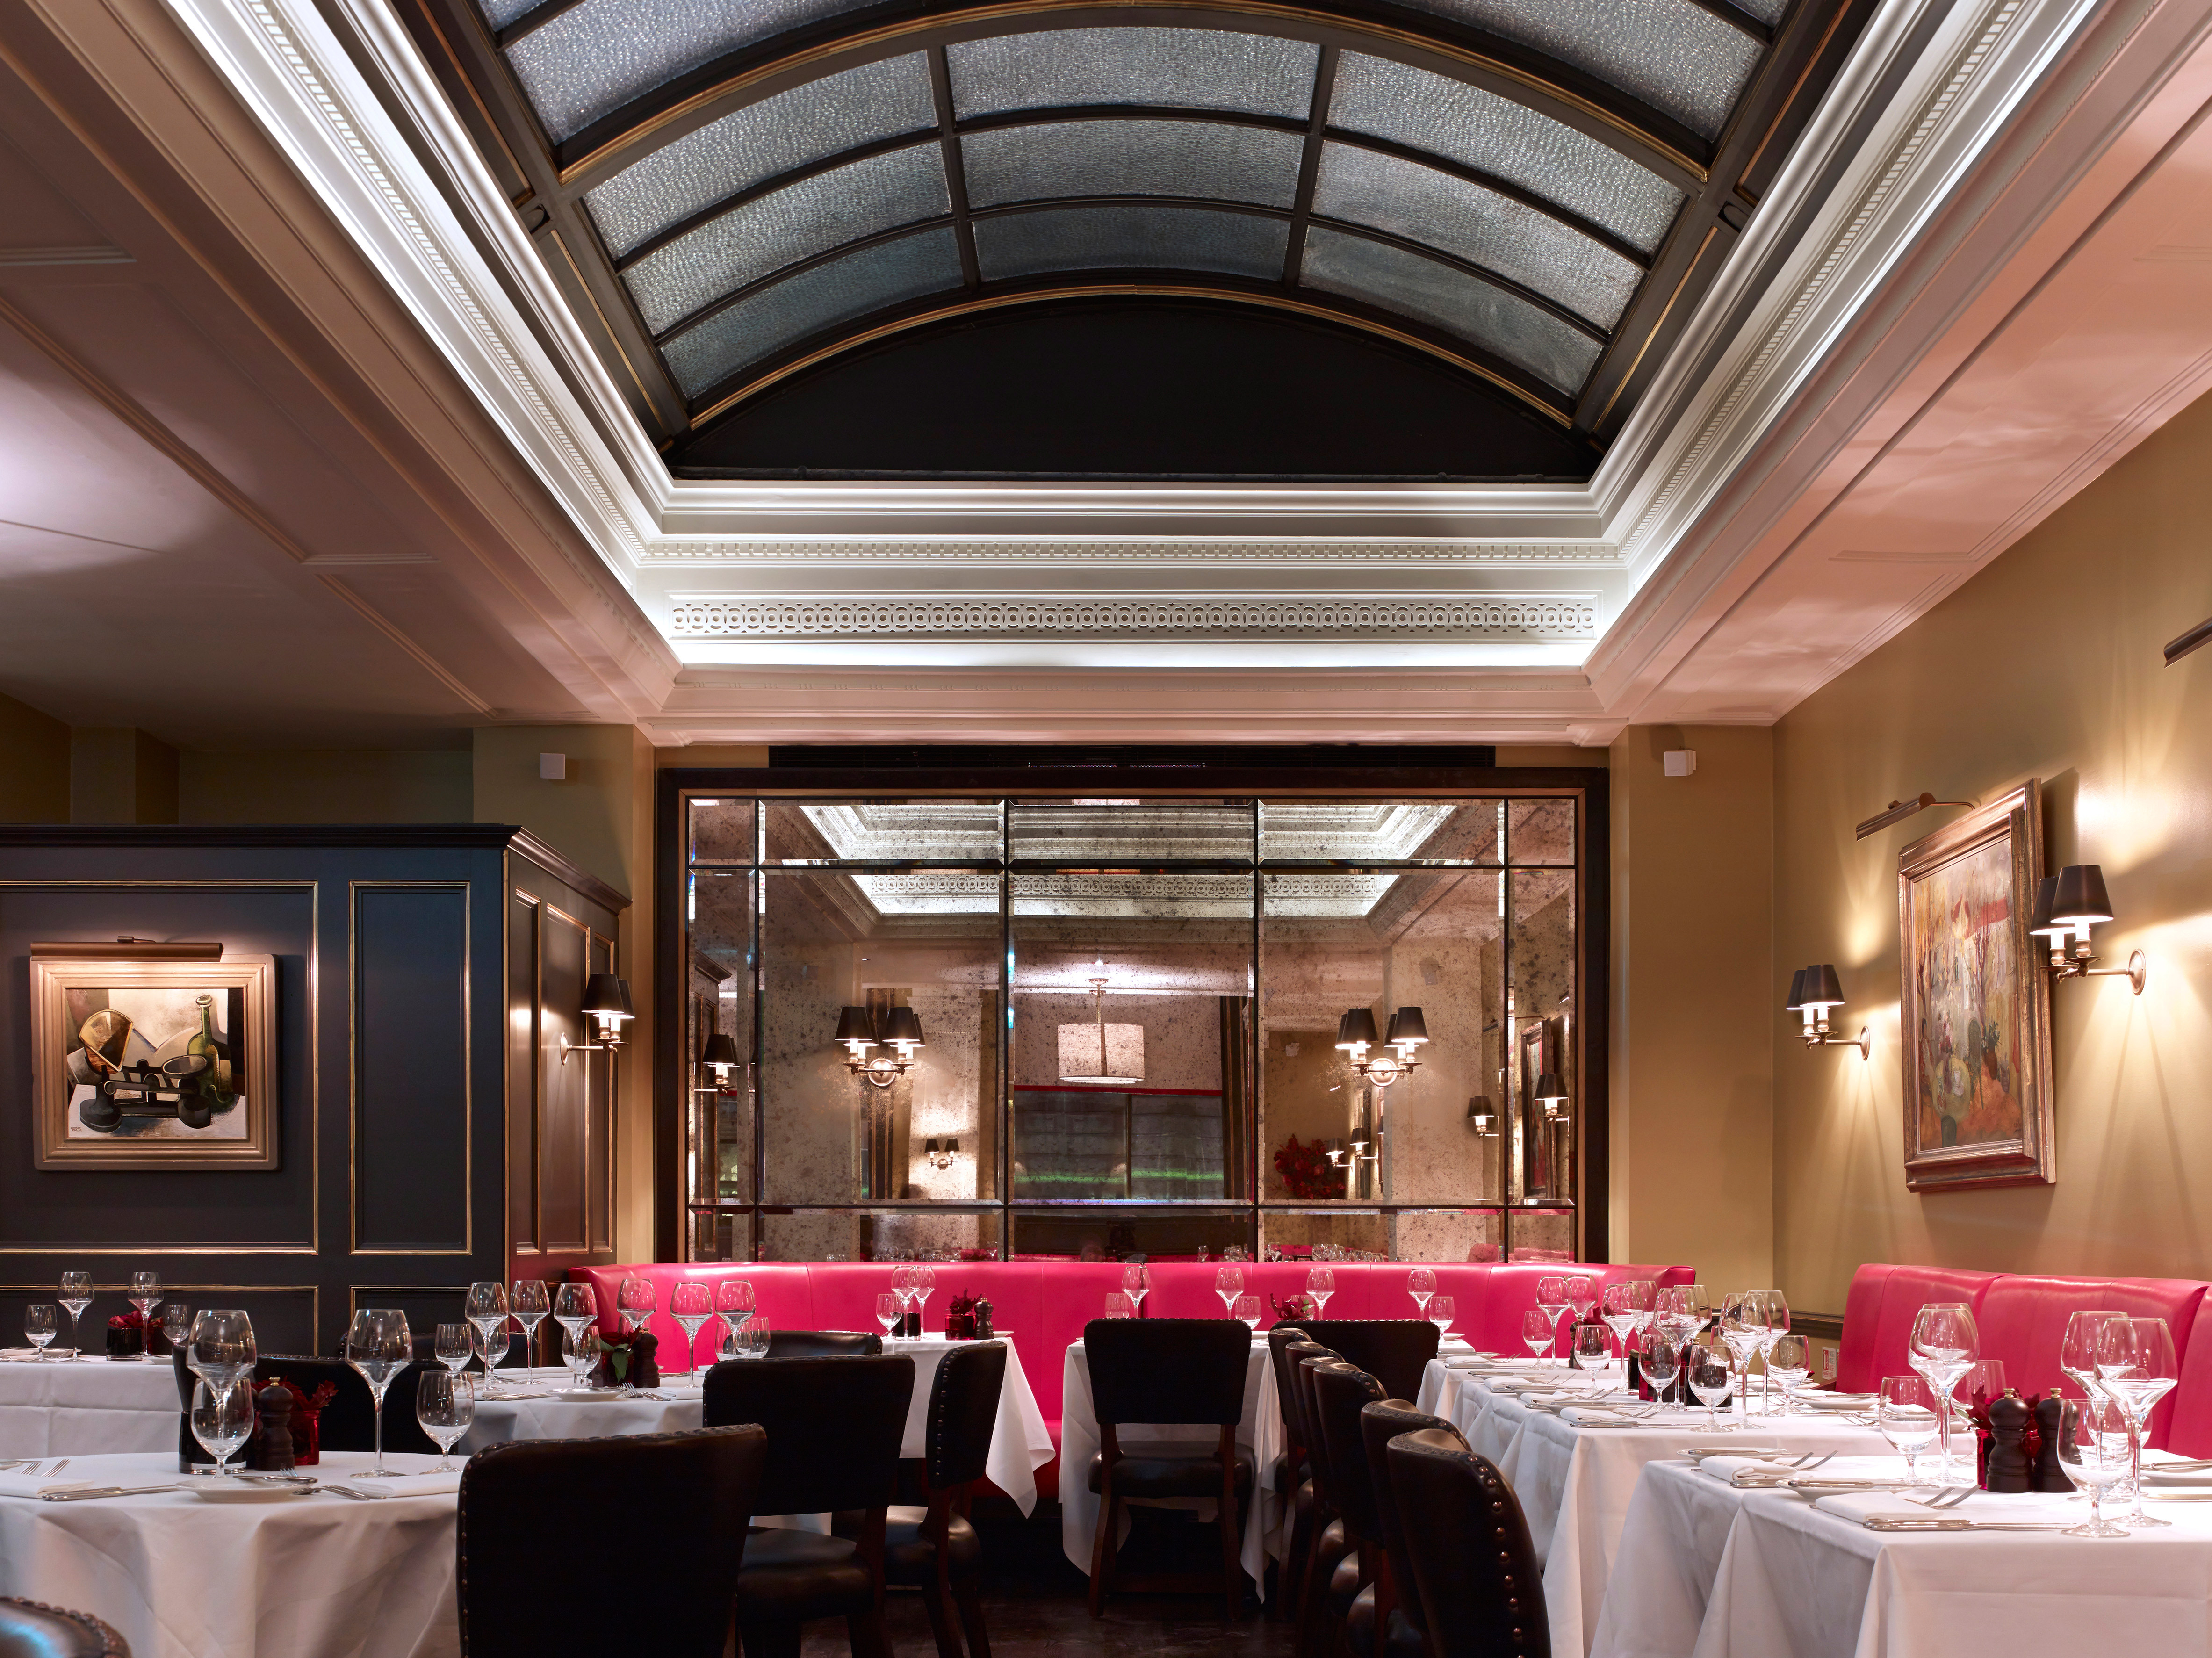 Reserve a table at Villandry - St James's